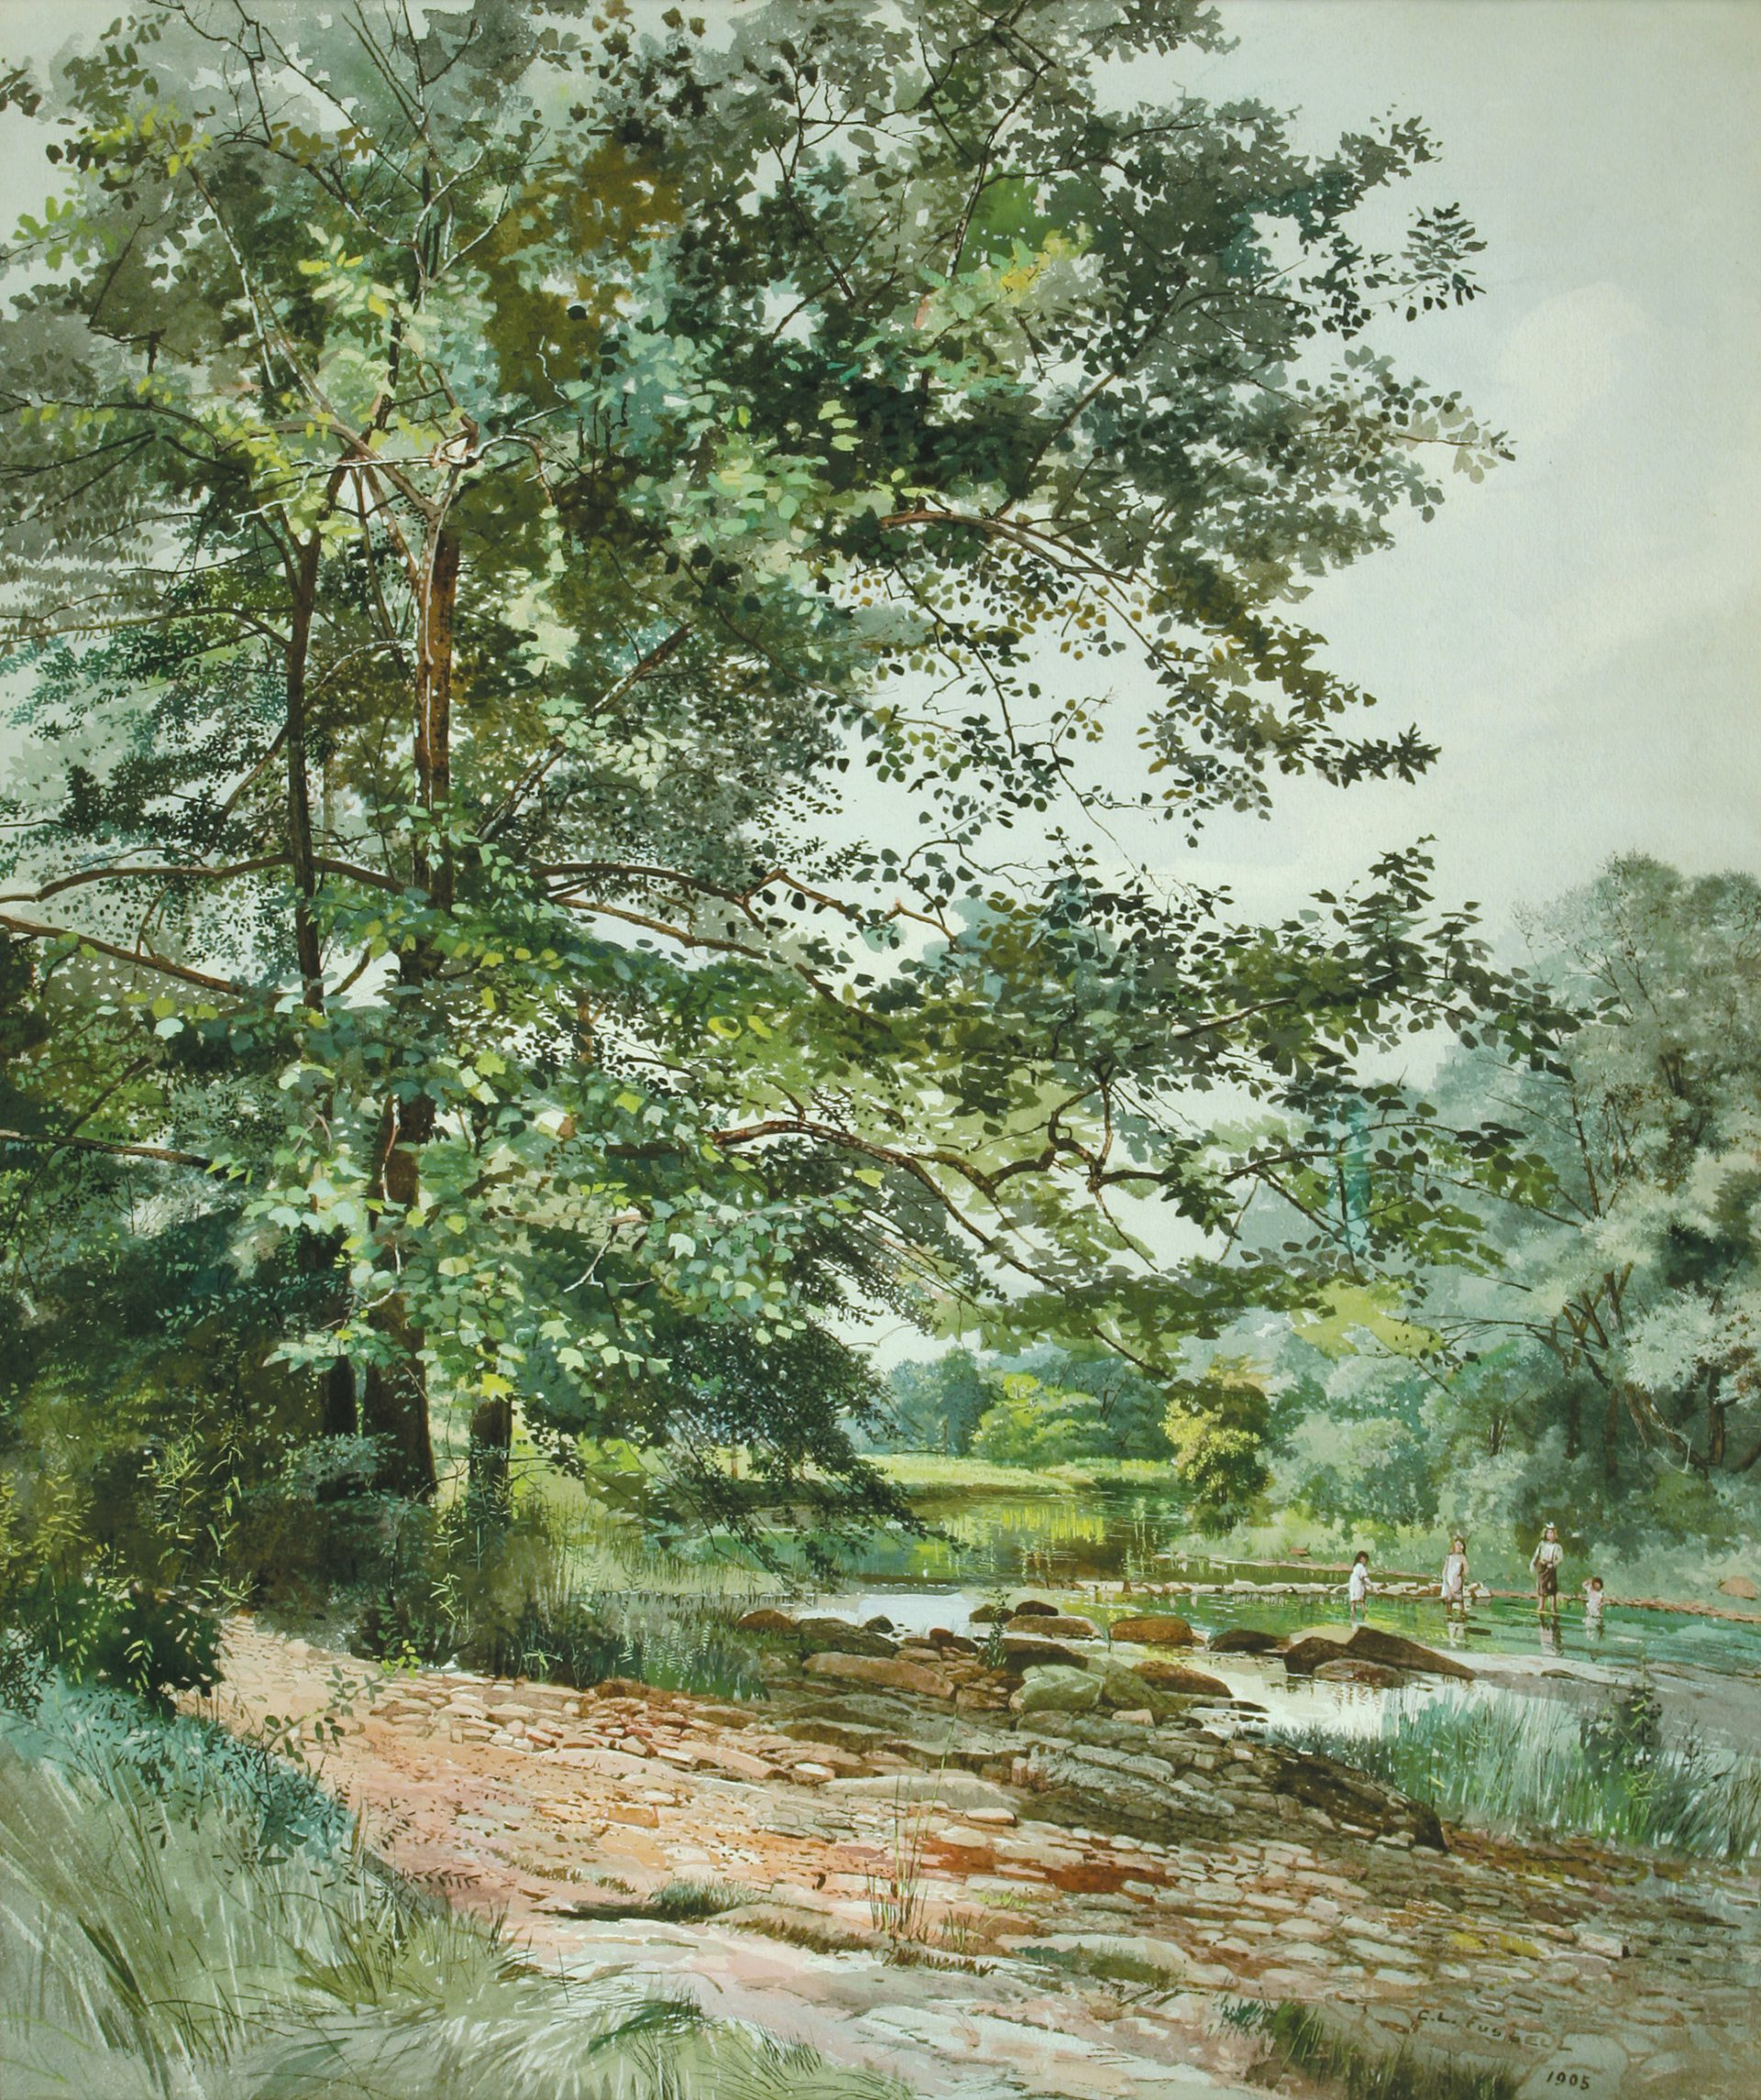 Children Wading in a Stream (Charles Lewis Fussell)